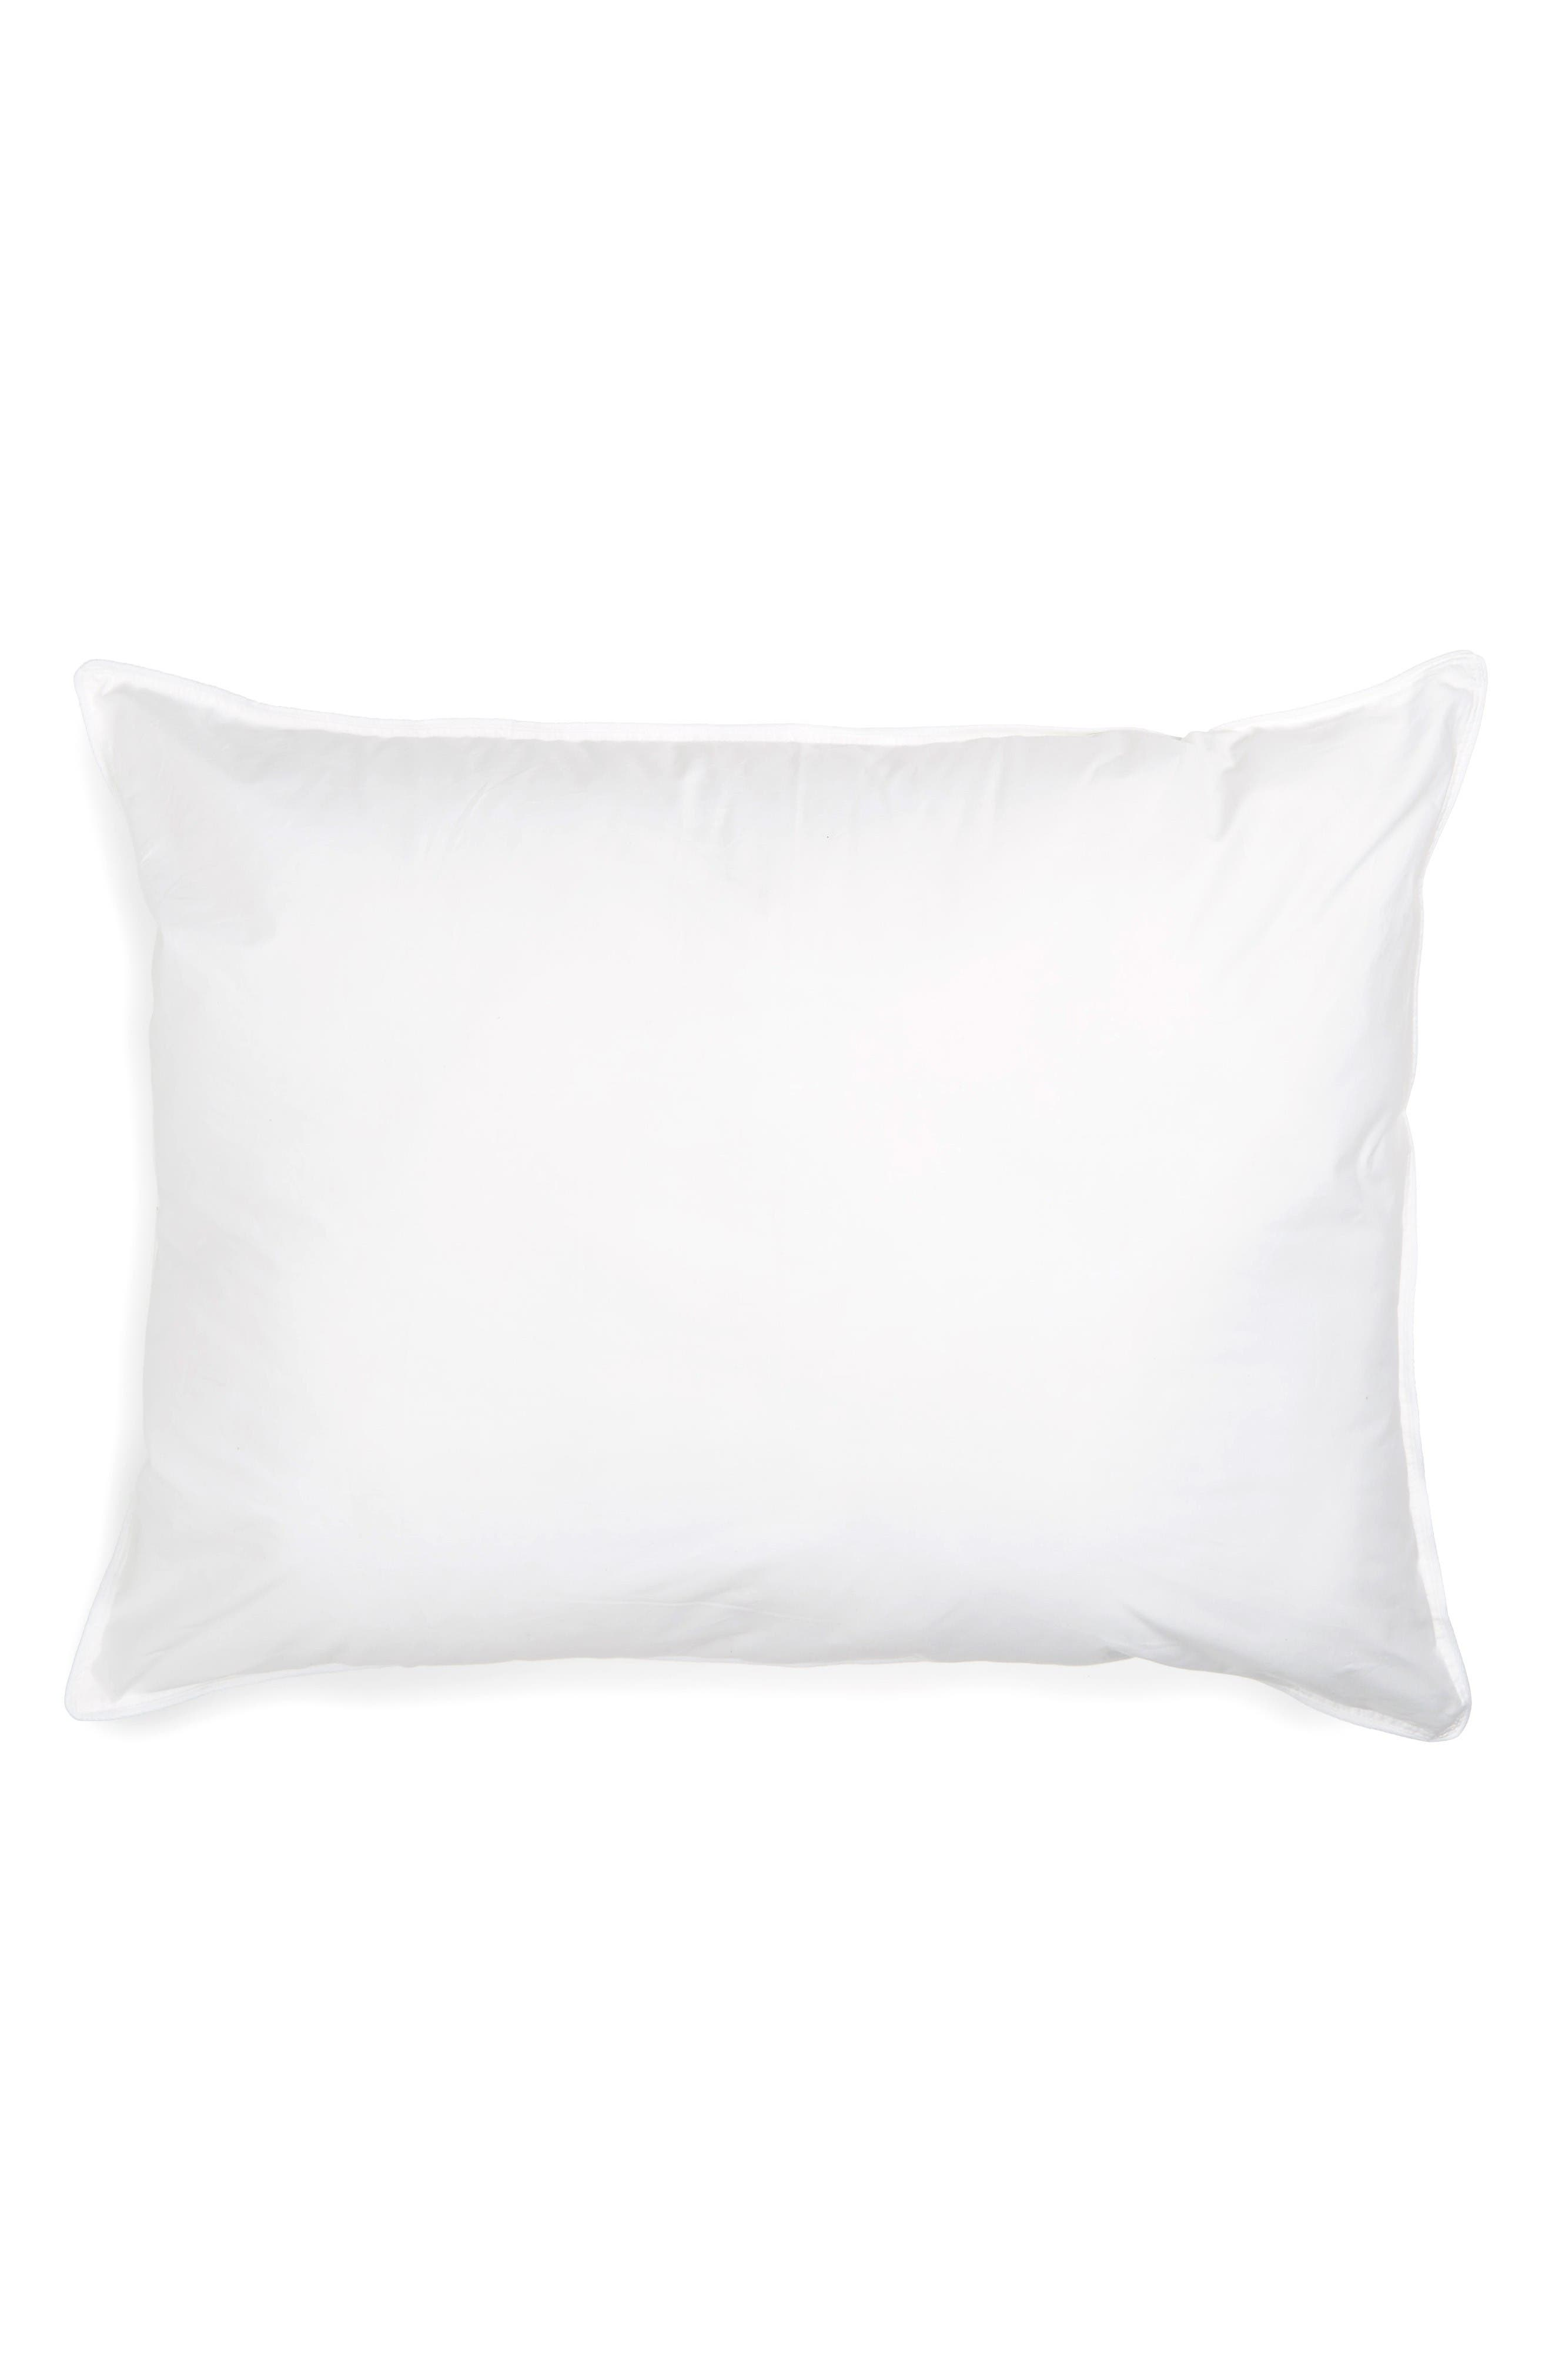 Main Image - Westin At Home 'Home Collection' Hypoallergenic Pillow